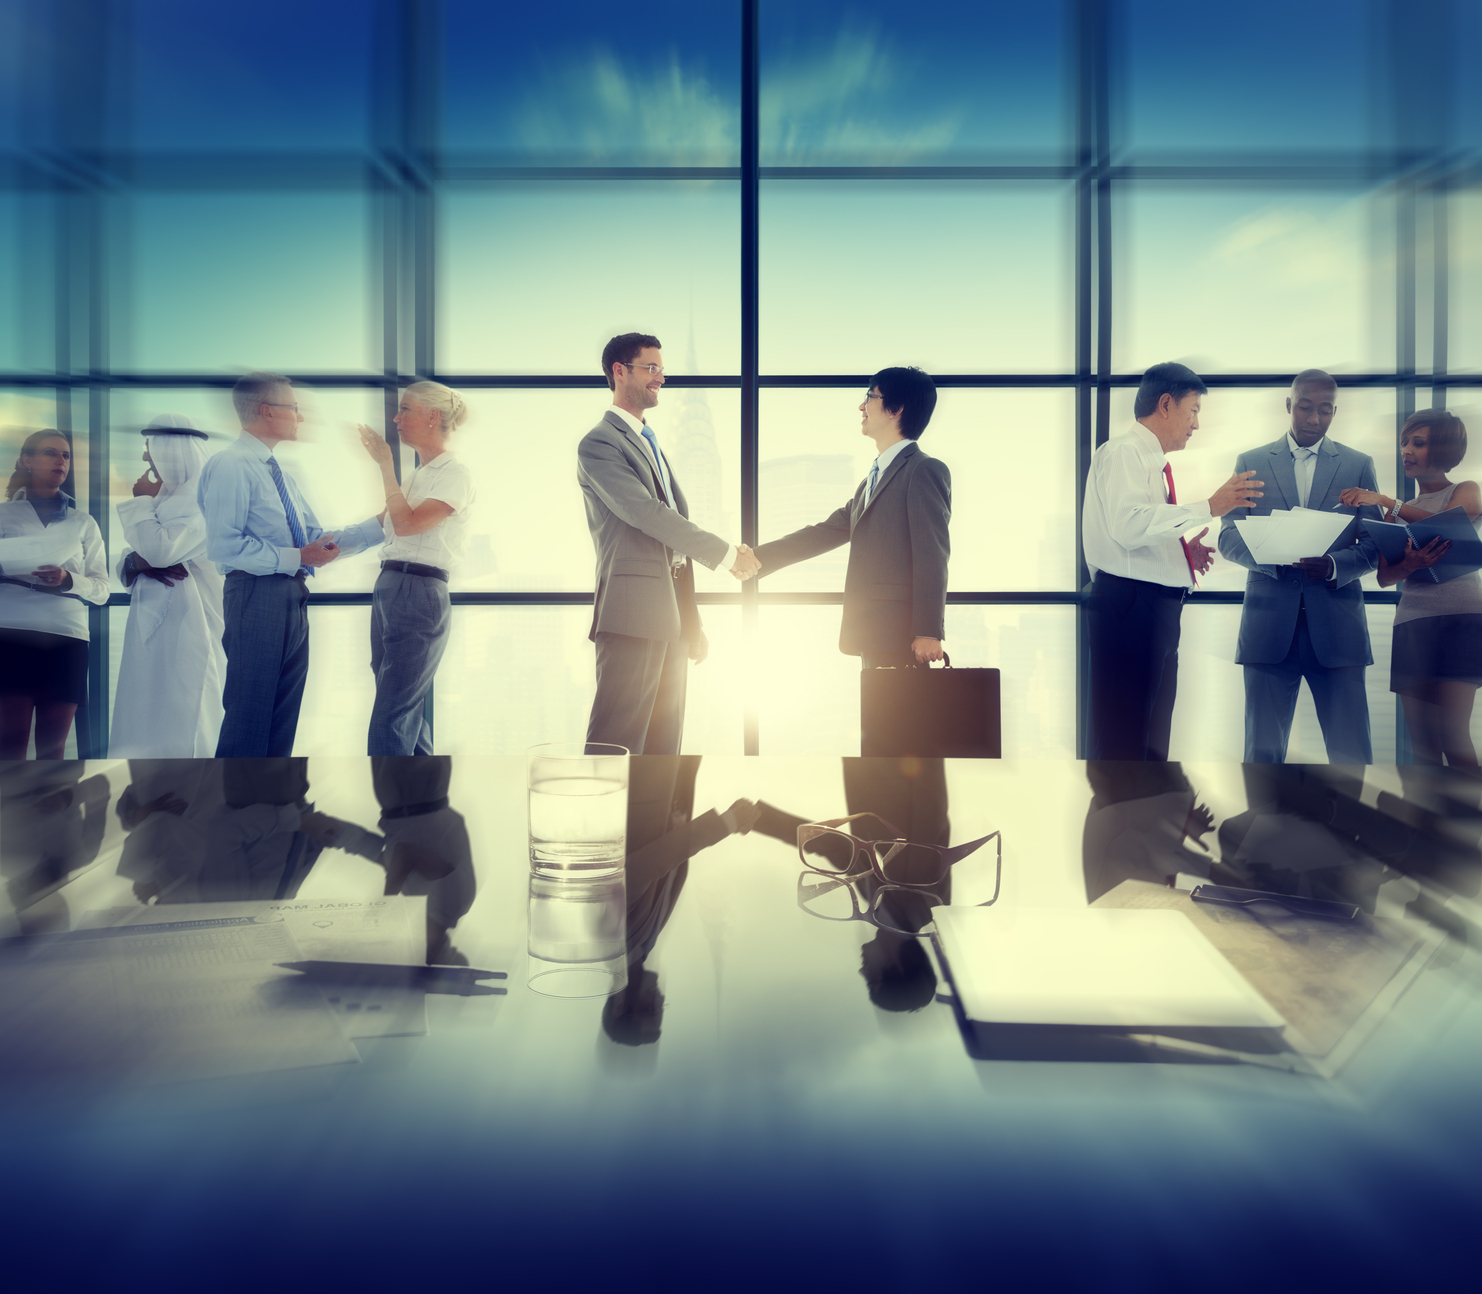 Group of business people and men handshake reflected onto table. (stock image)